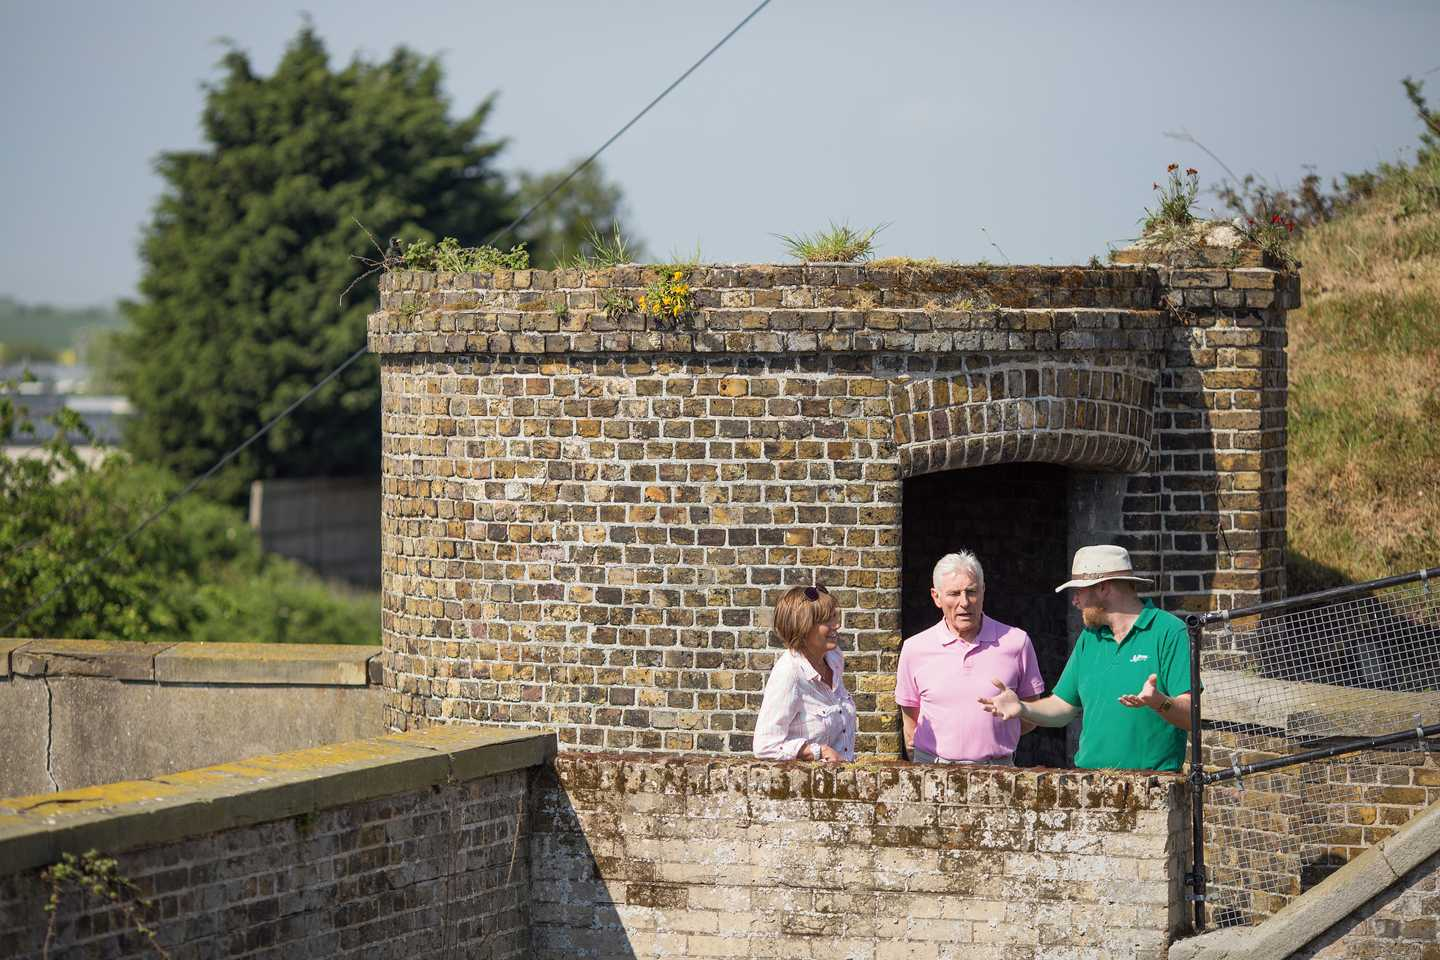 Guests exploring Slough Fort at Allhallows caravan park